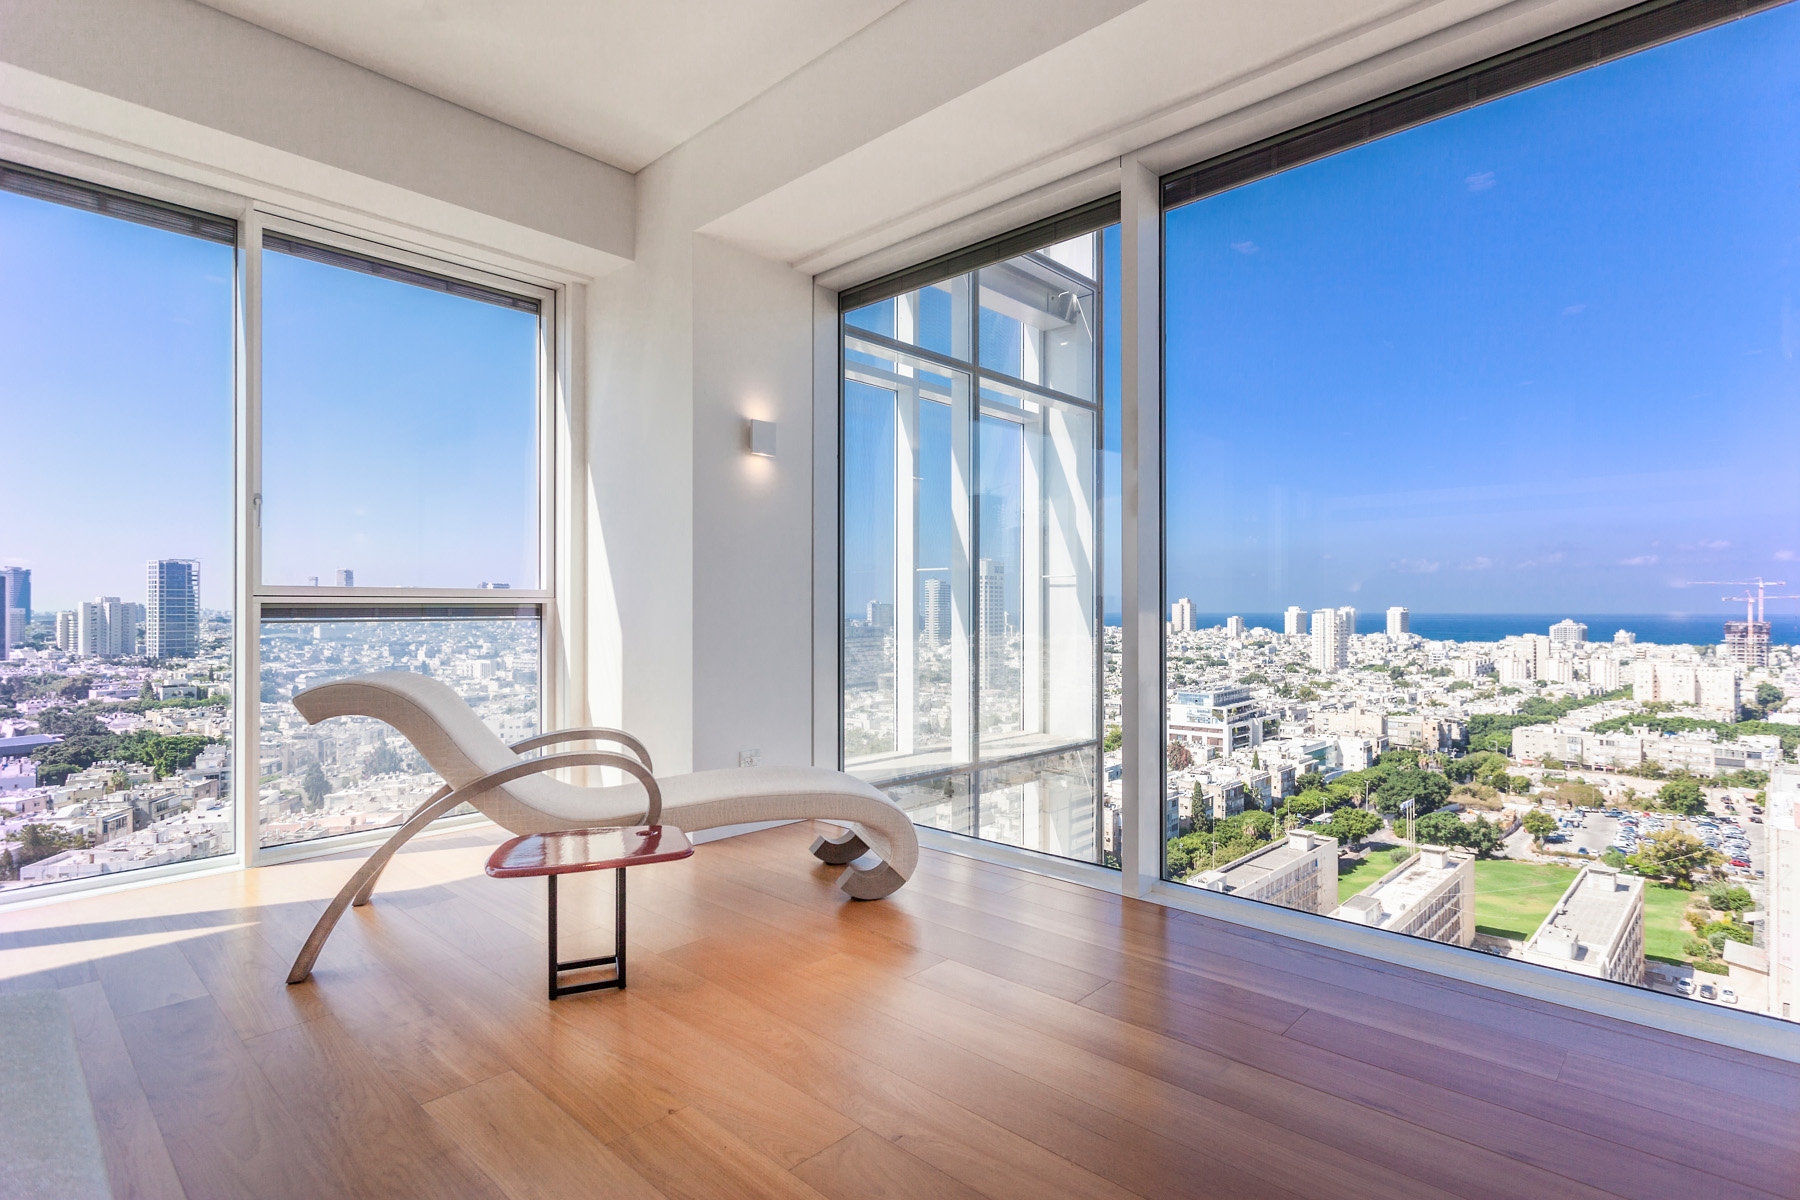 Apartman Dairesi için Satış at Modern Luxury Apartment With Incomparable Views Tel Aviv, Israil